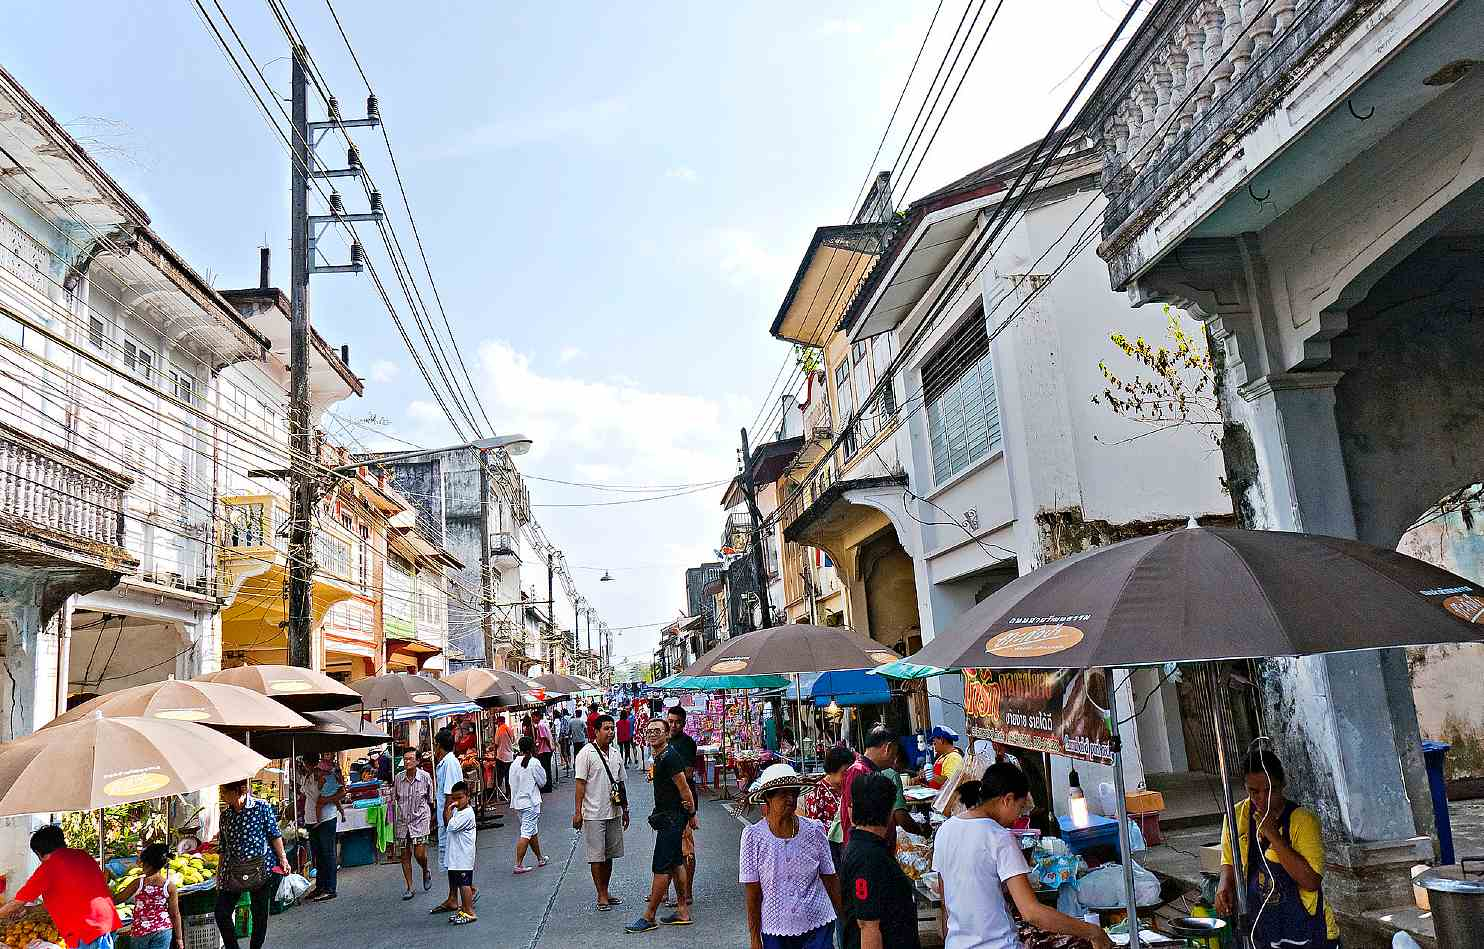 People shopping and street stalls in Takua Pa Old Town Market